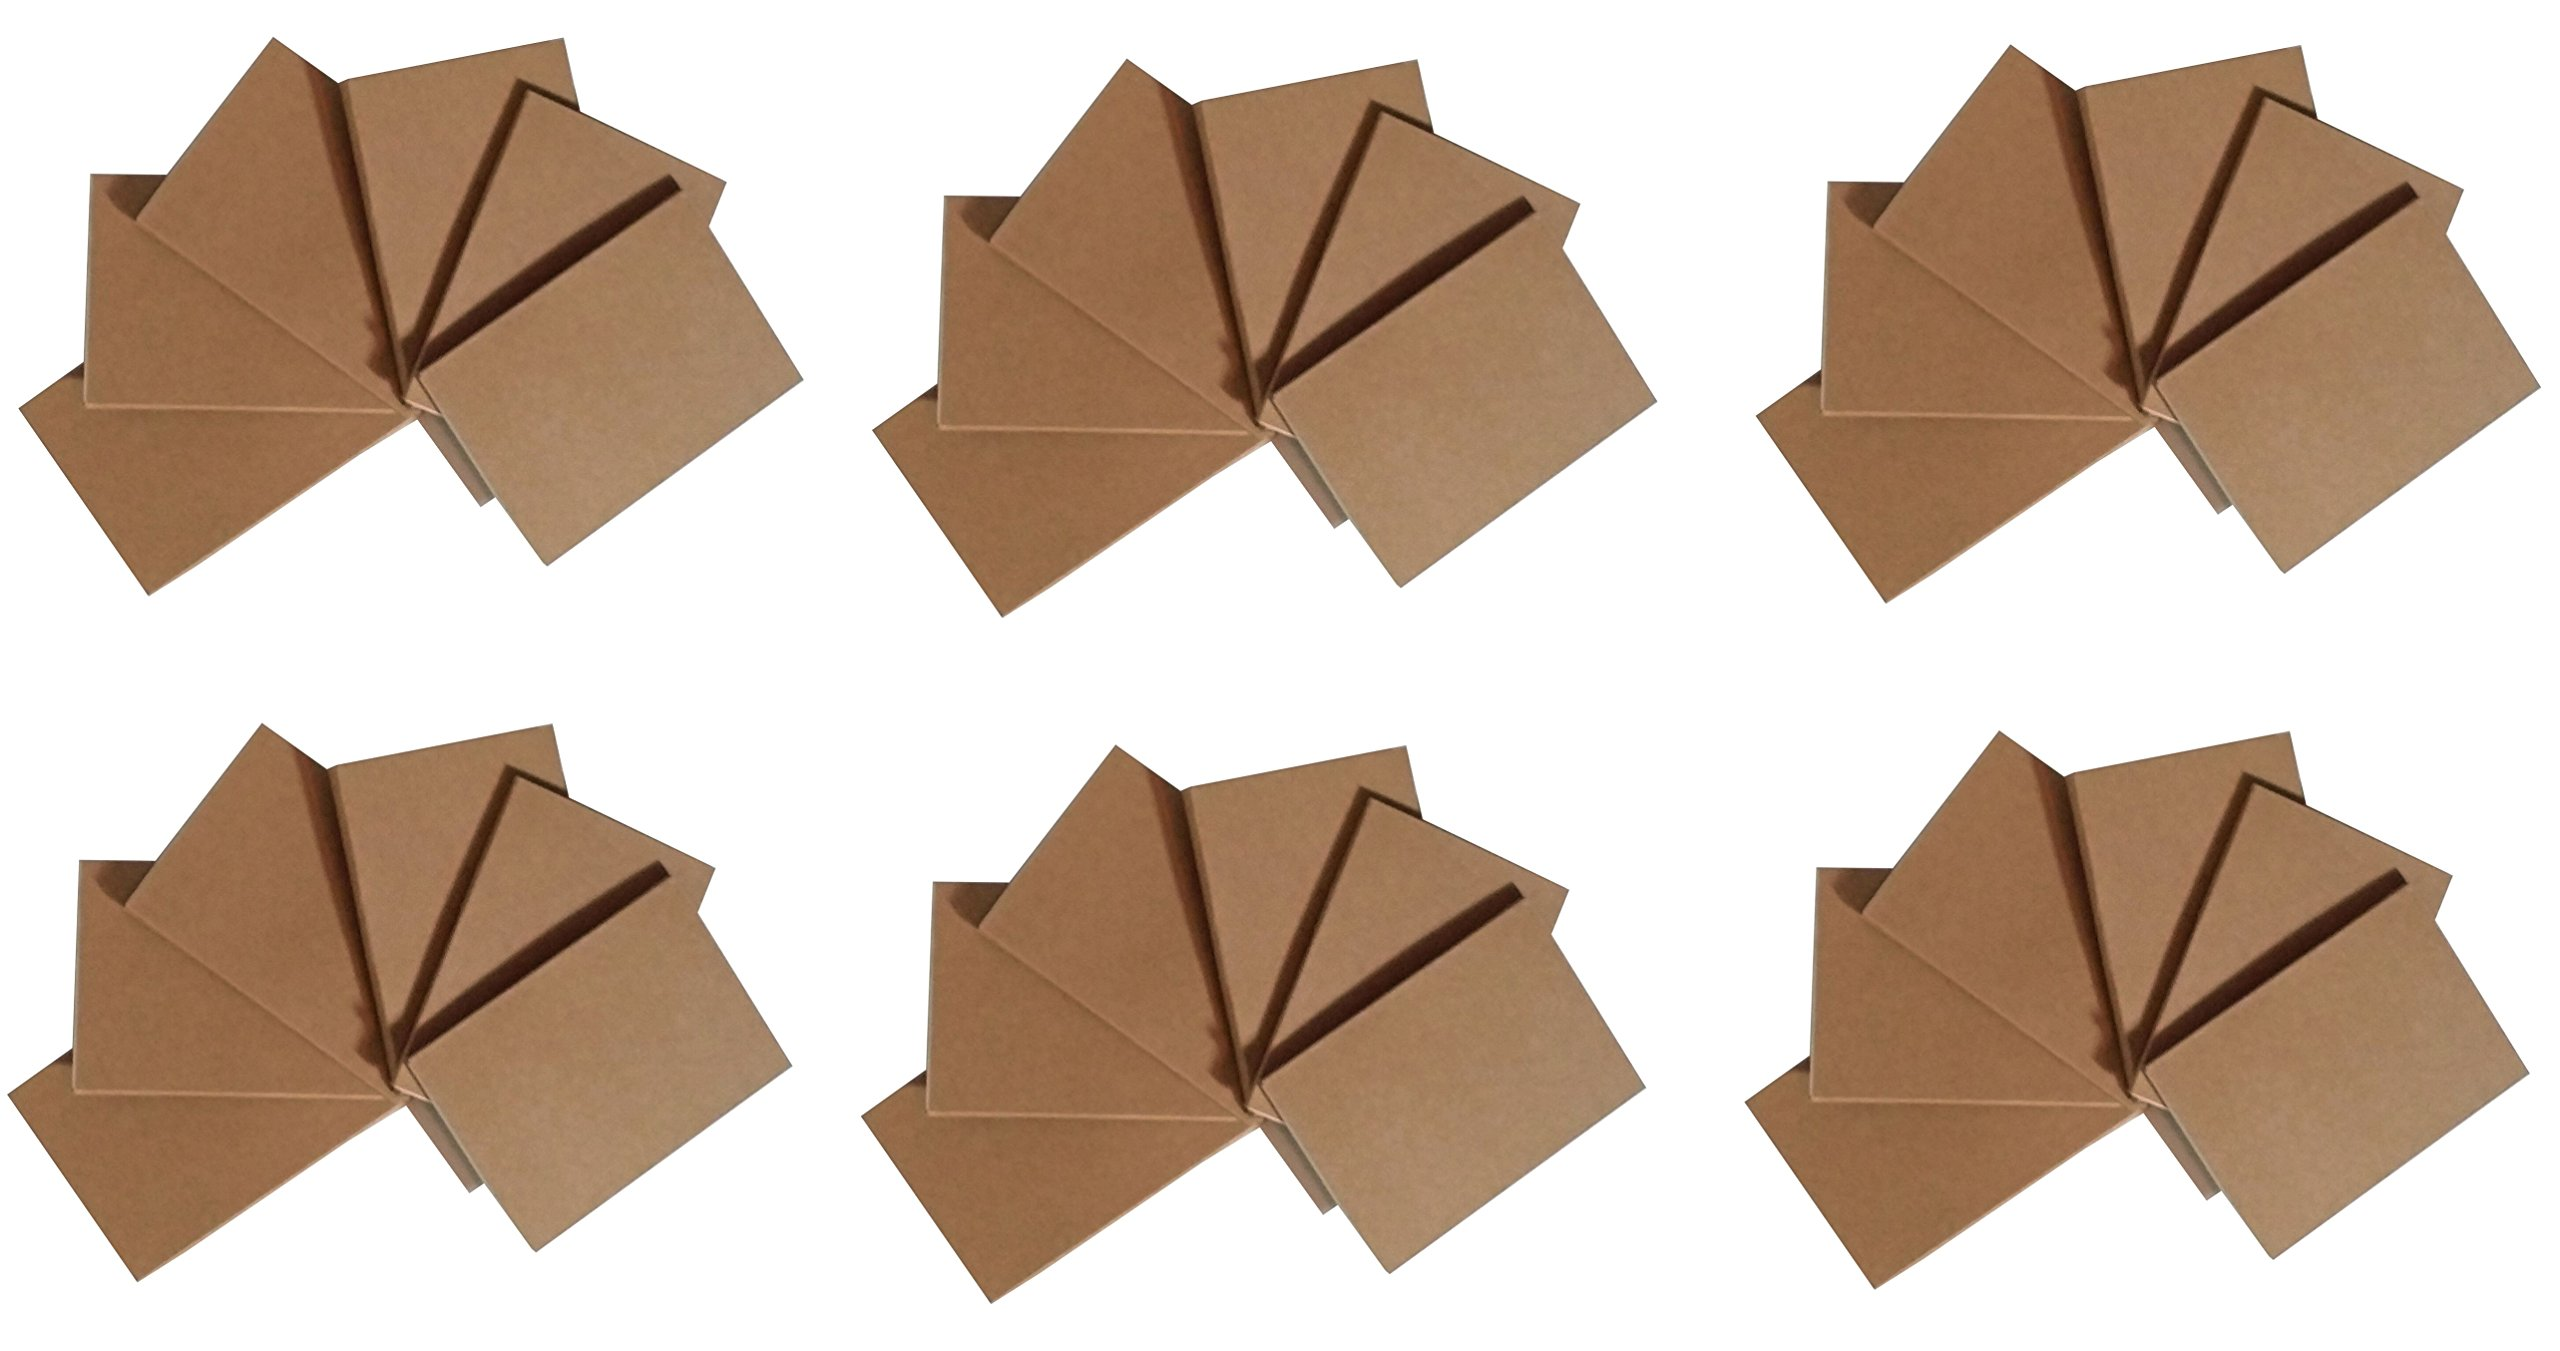 Notepads with Kraft Paper Covers - Bulk Buys (36 Notebooks, 4.5 x 3 Mini Notebooks)